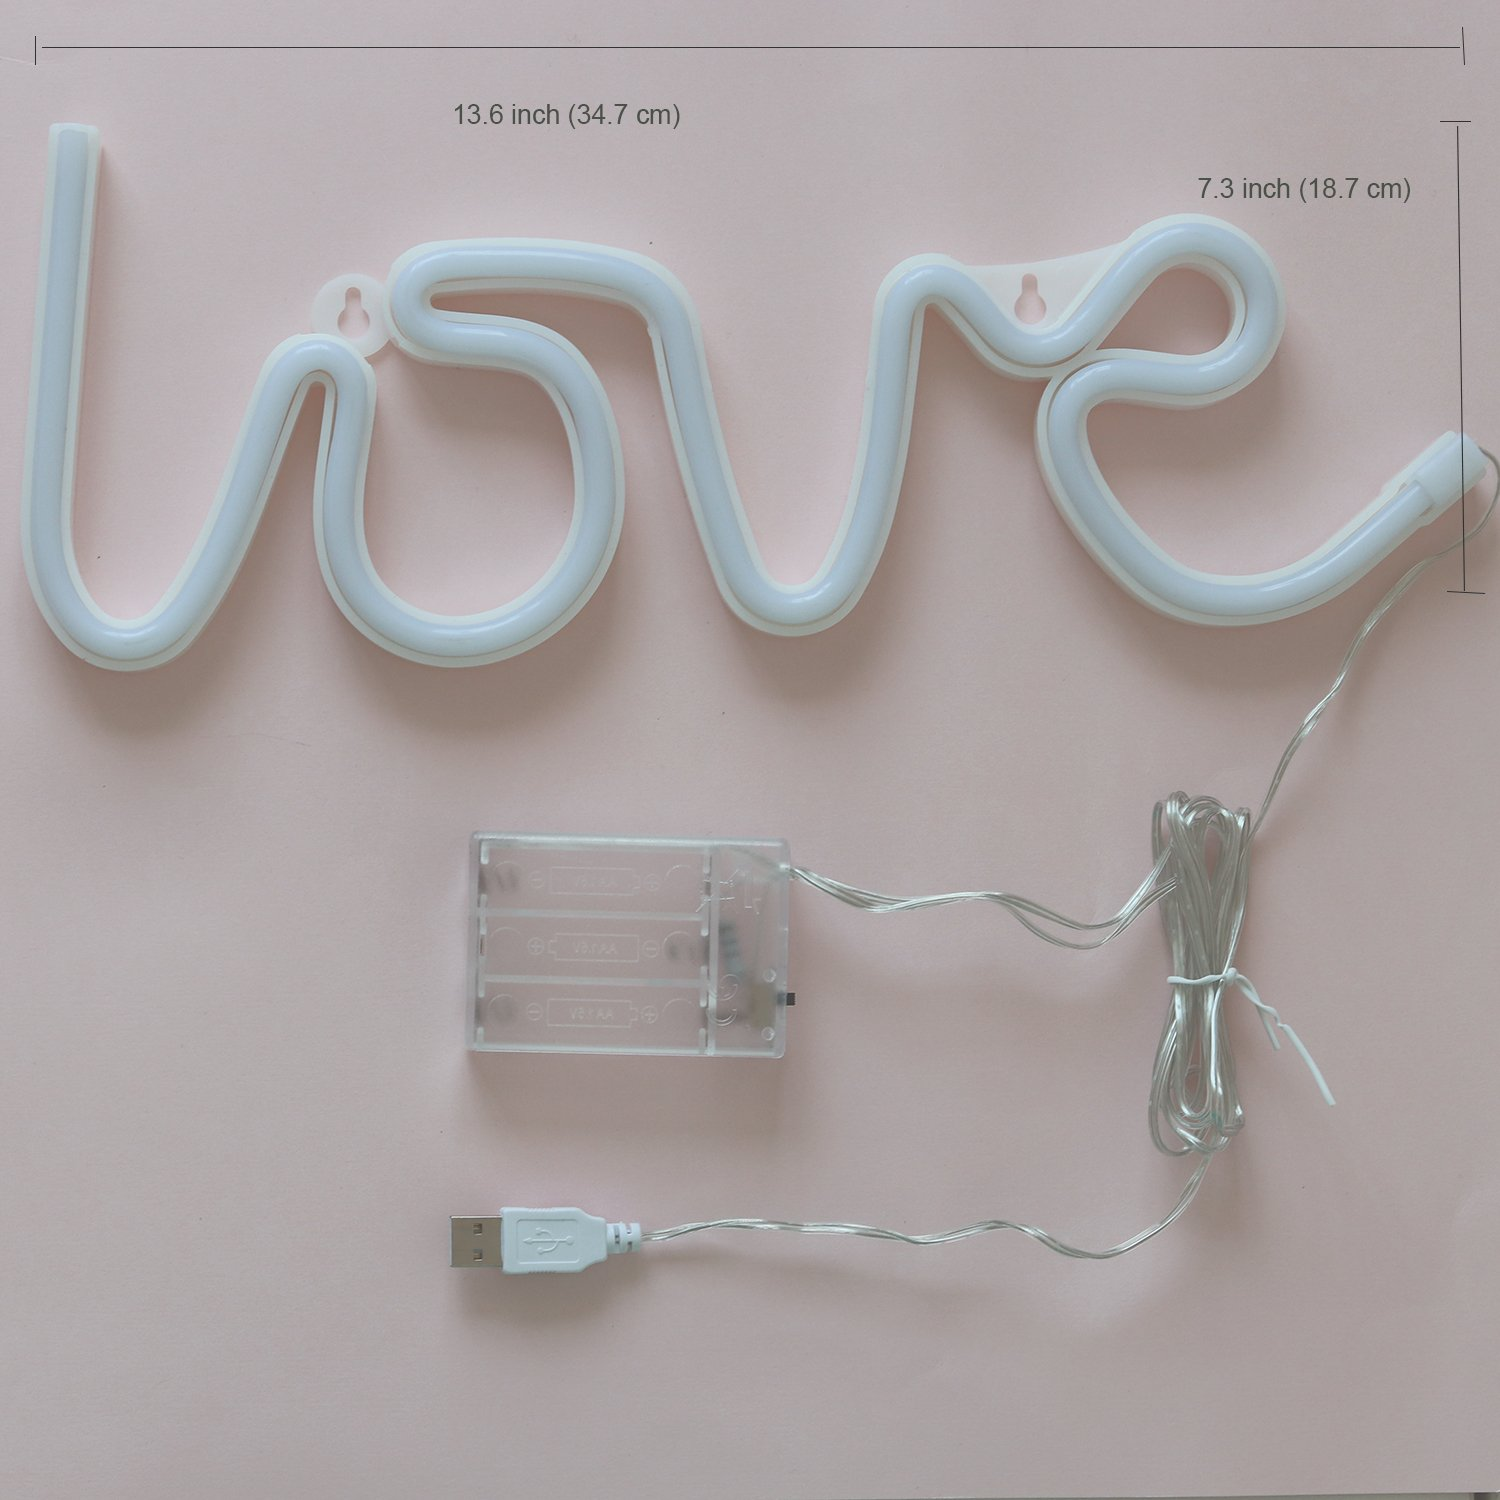 Neon Signs Love Letters Pink LED Decorative Night Light for Bedroom Wall décor Light for Wedding Valentine's day Pub Battery Operated and USB Powered Neon Light(NELOV) by VagaryLight (Image #6)